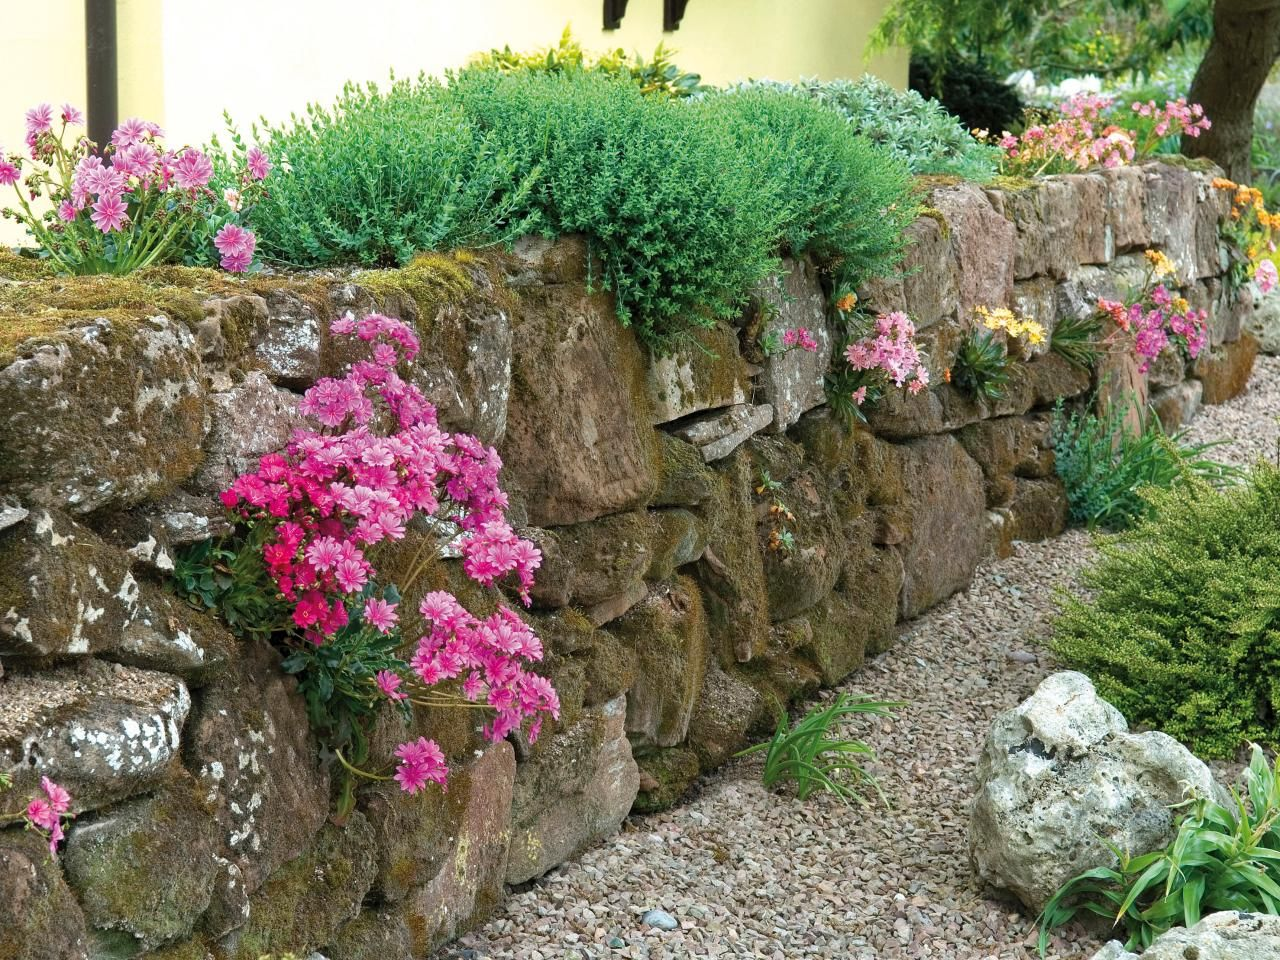 Flowers In The Wall Garden - Enhancing walls good fences make good neighbors picking materials for boundaries on hgtv love the rock wall with rock garden plantings